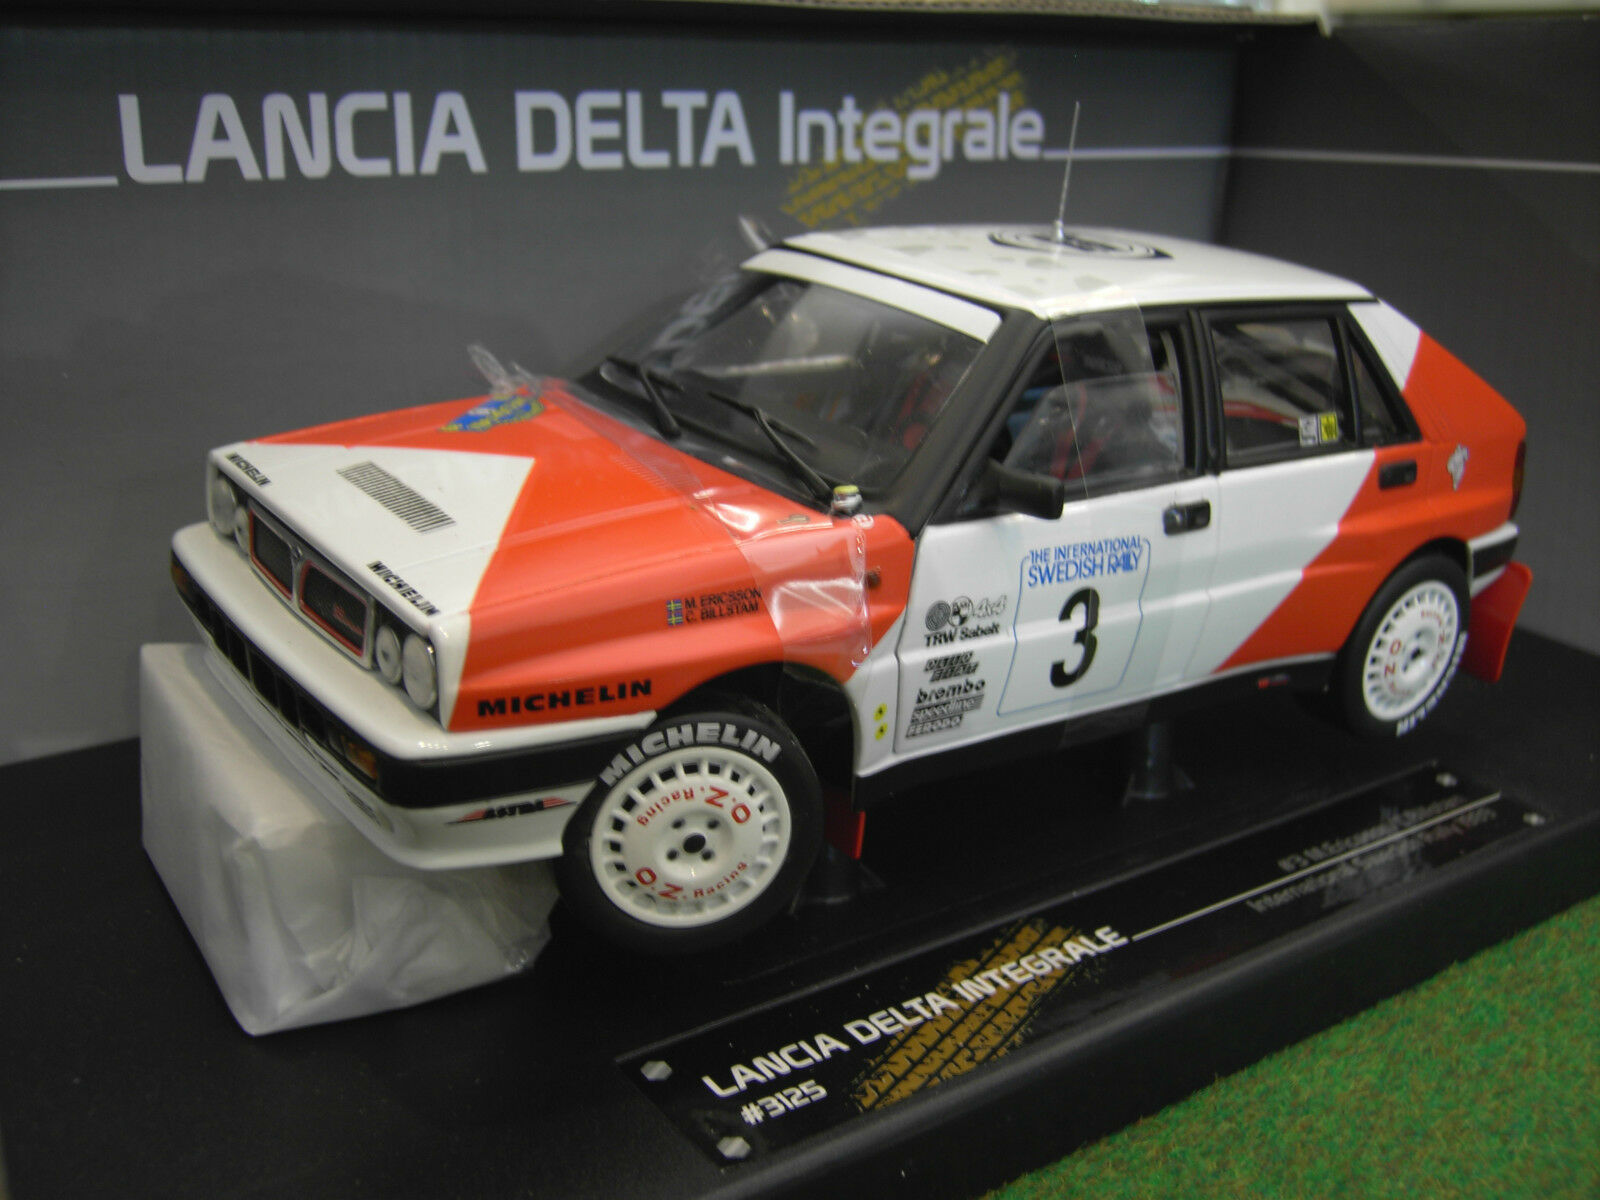 LANCIA DELTA INTEGRALE 1989 RALLYE  3 3 3 international swedish 1 18 SUN STAR 3125 f37776